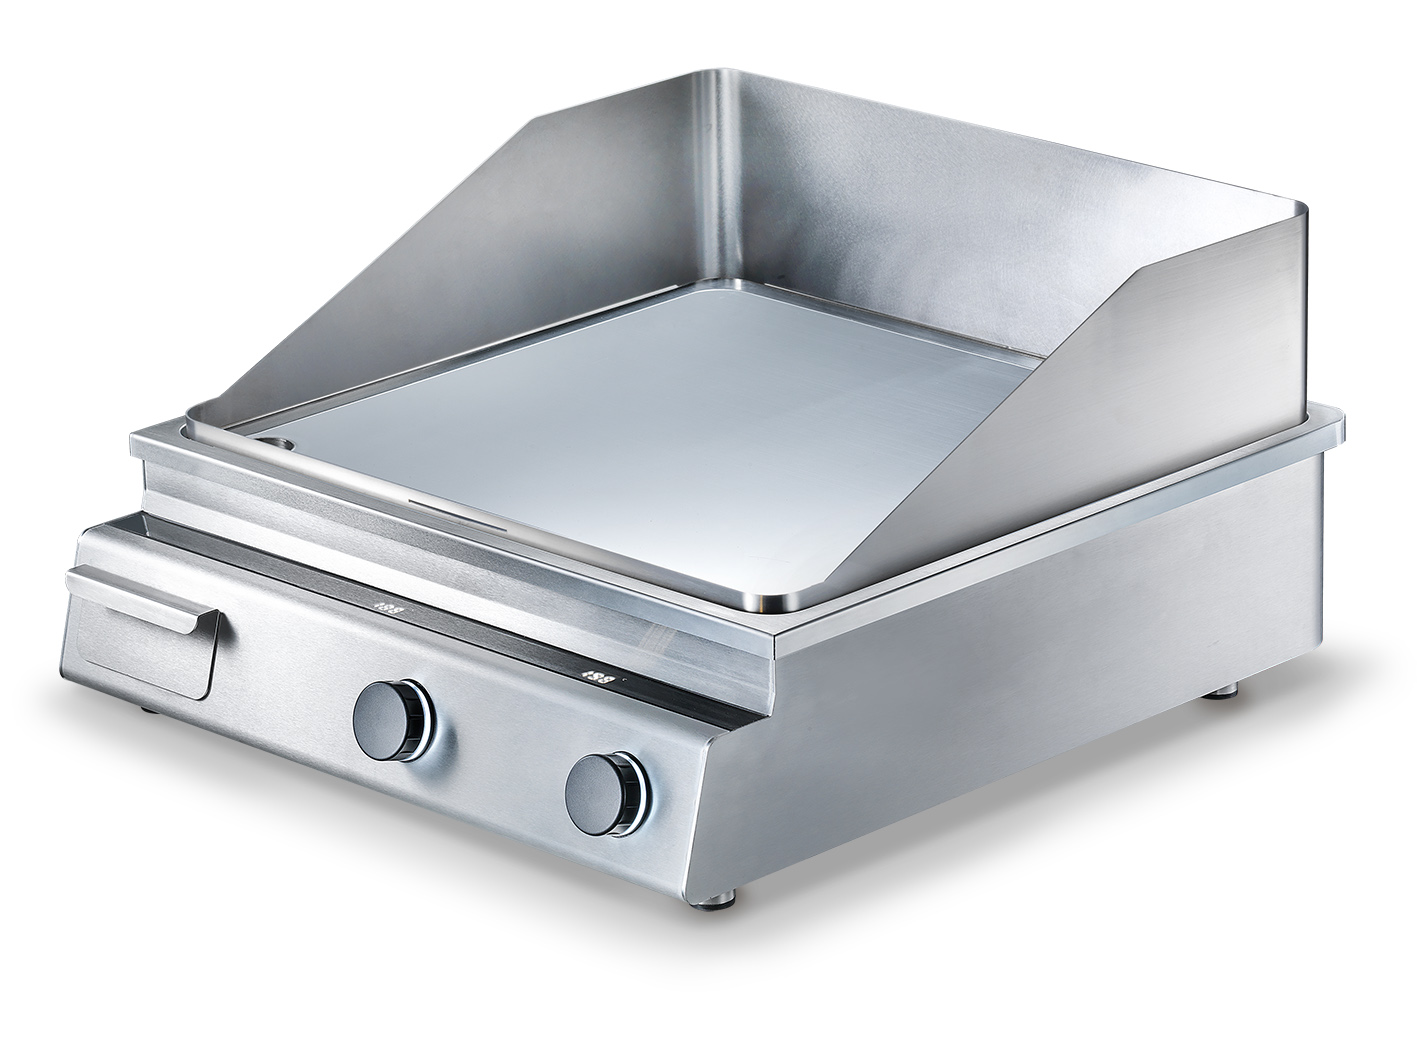 Table top griddle 380-440 3ph 10 kW